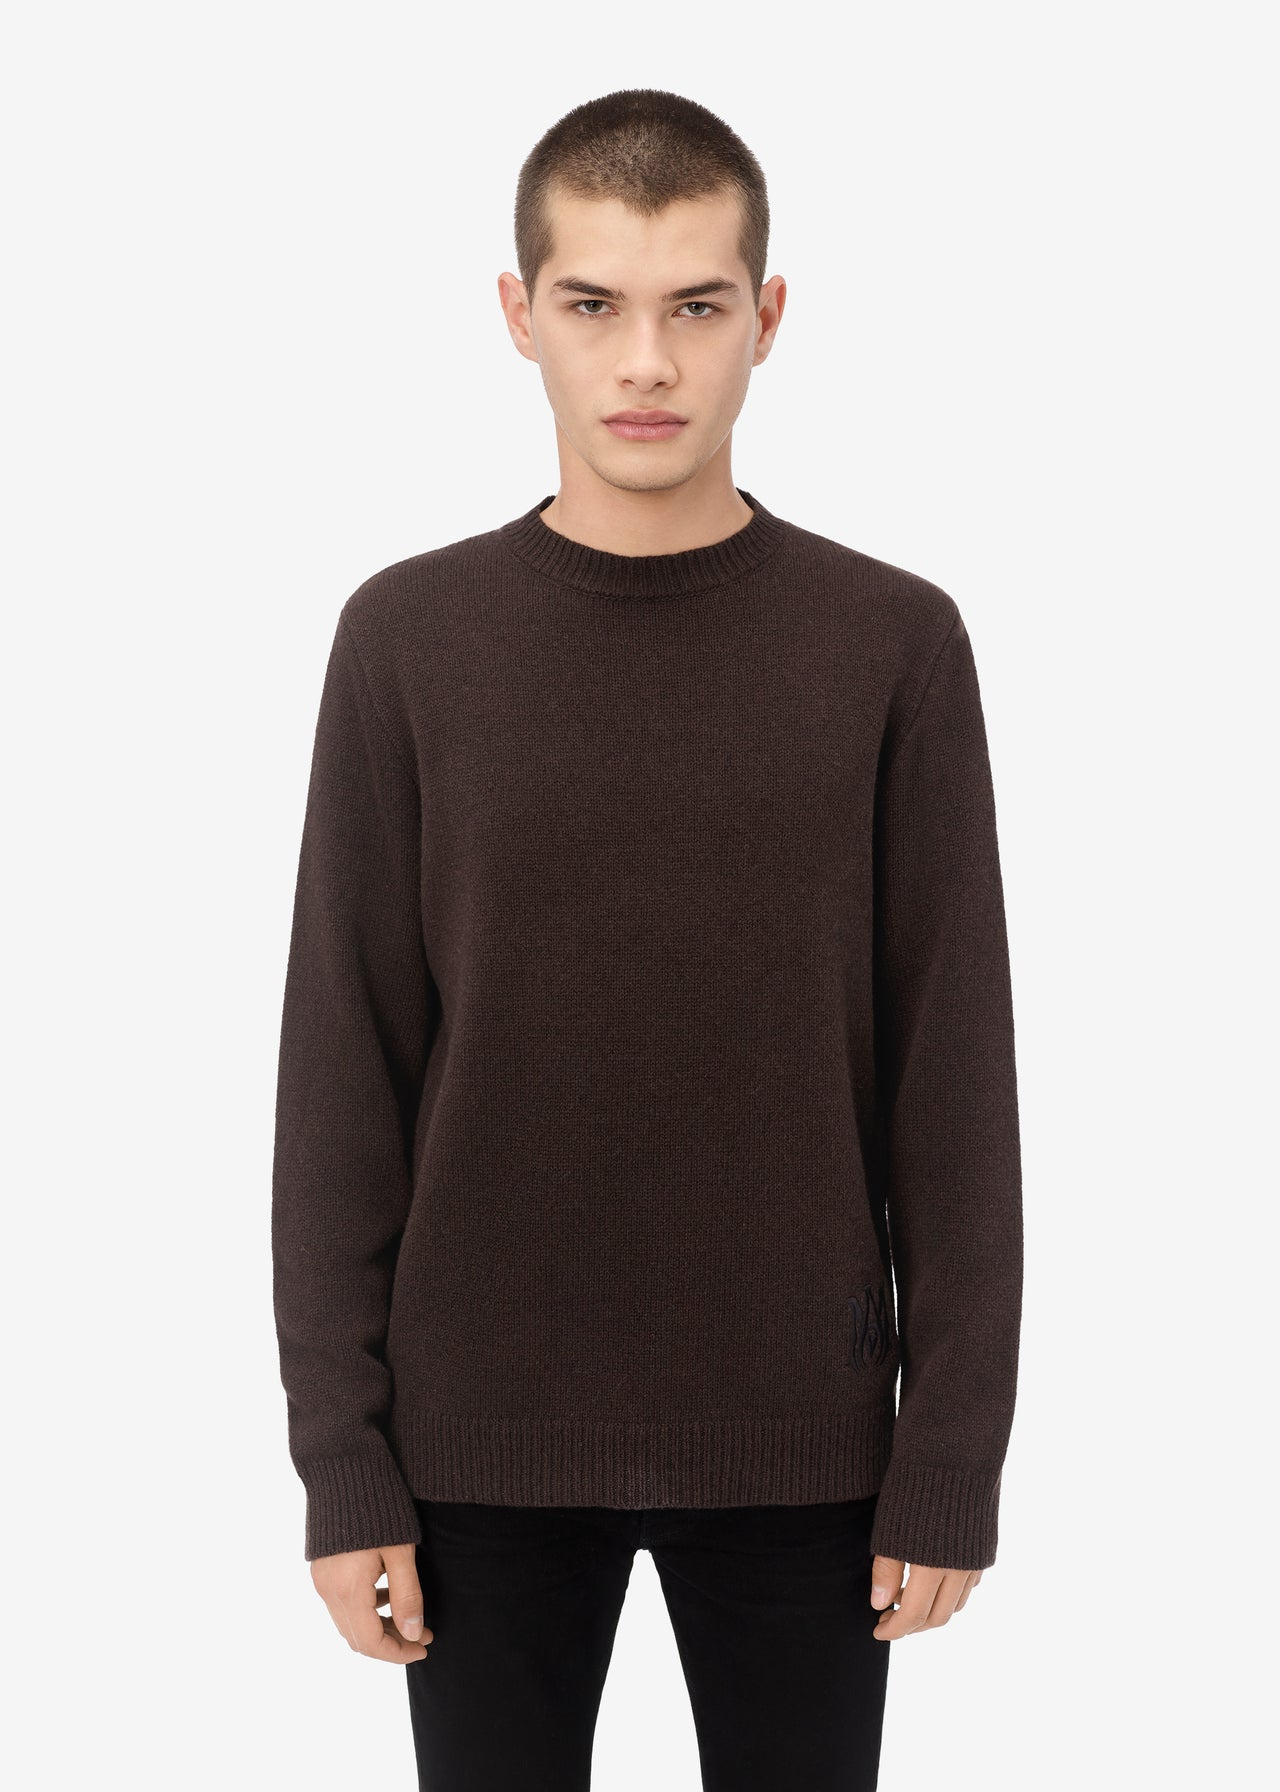 CLASSIC CREWNECK - DARK BROWN